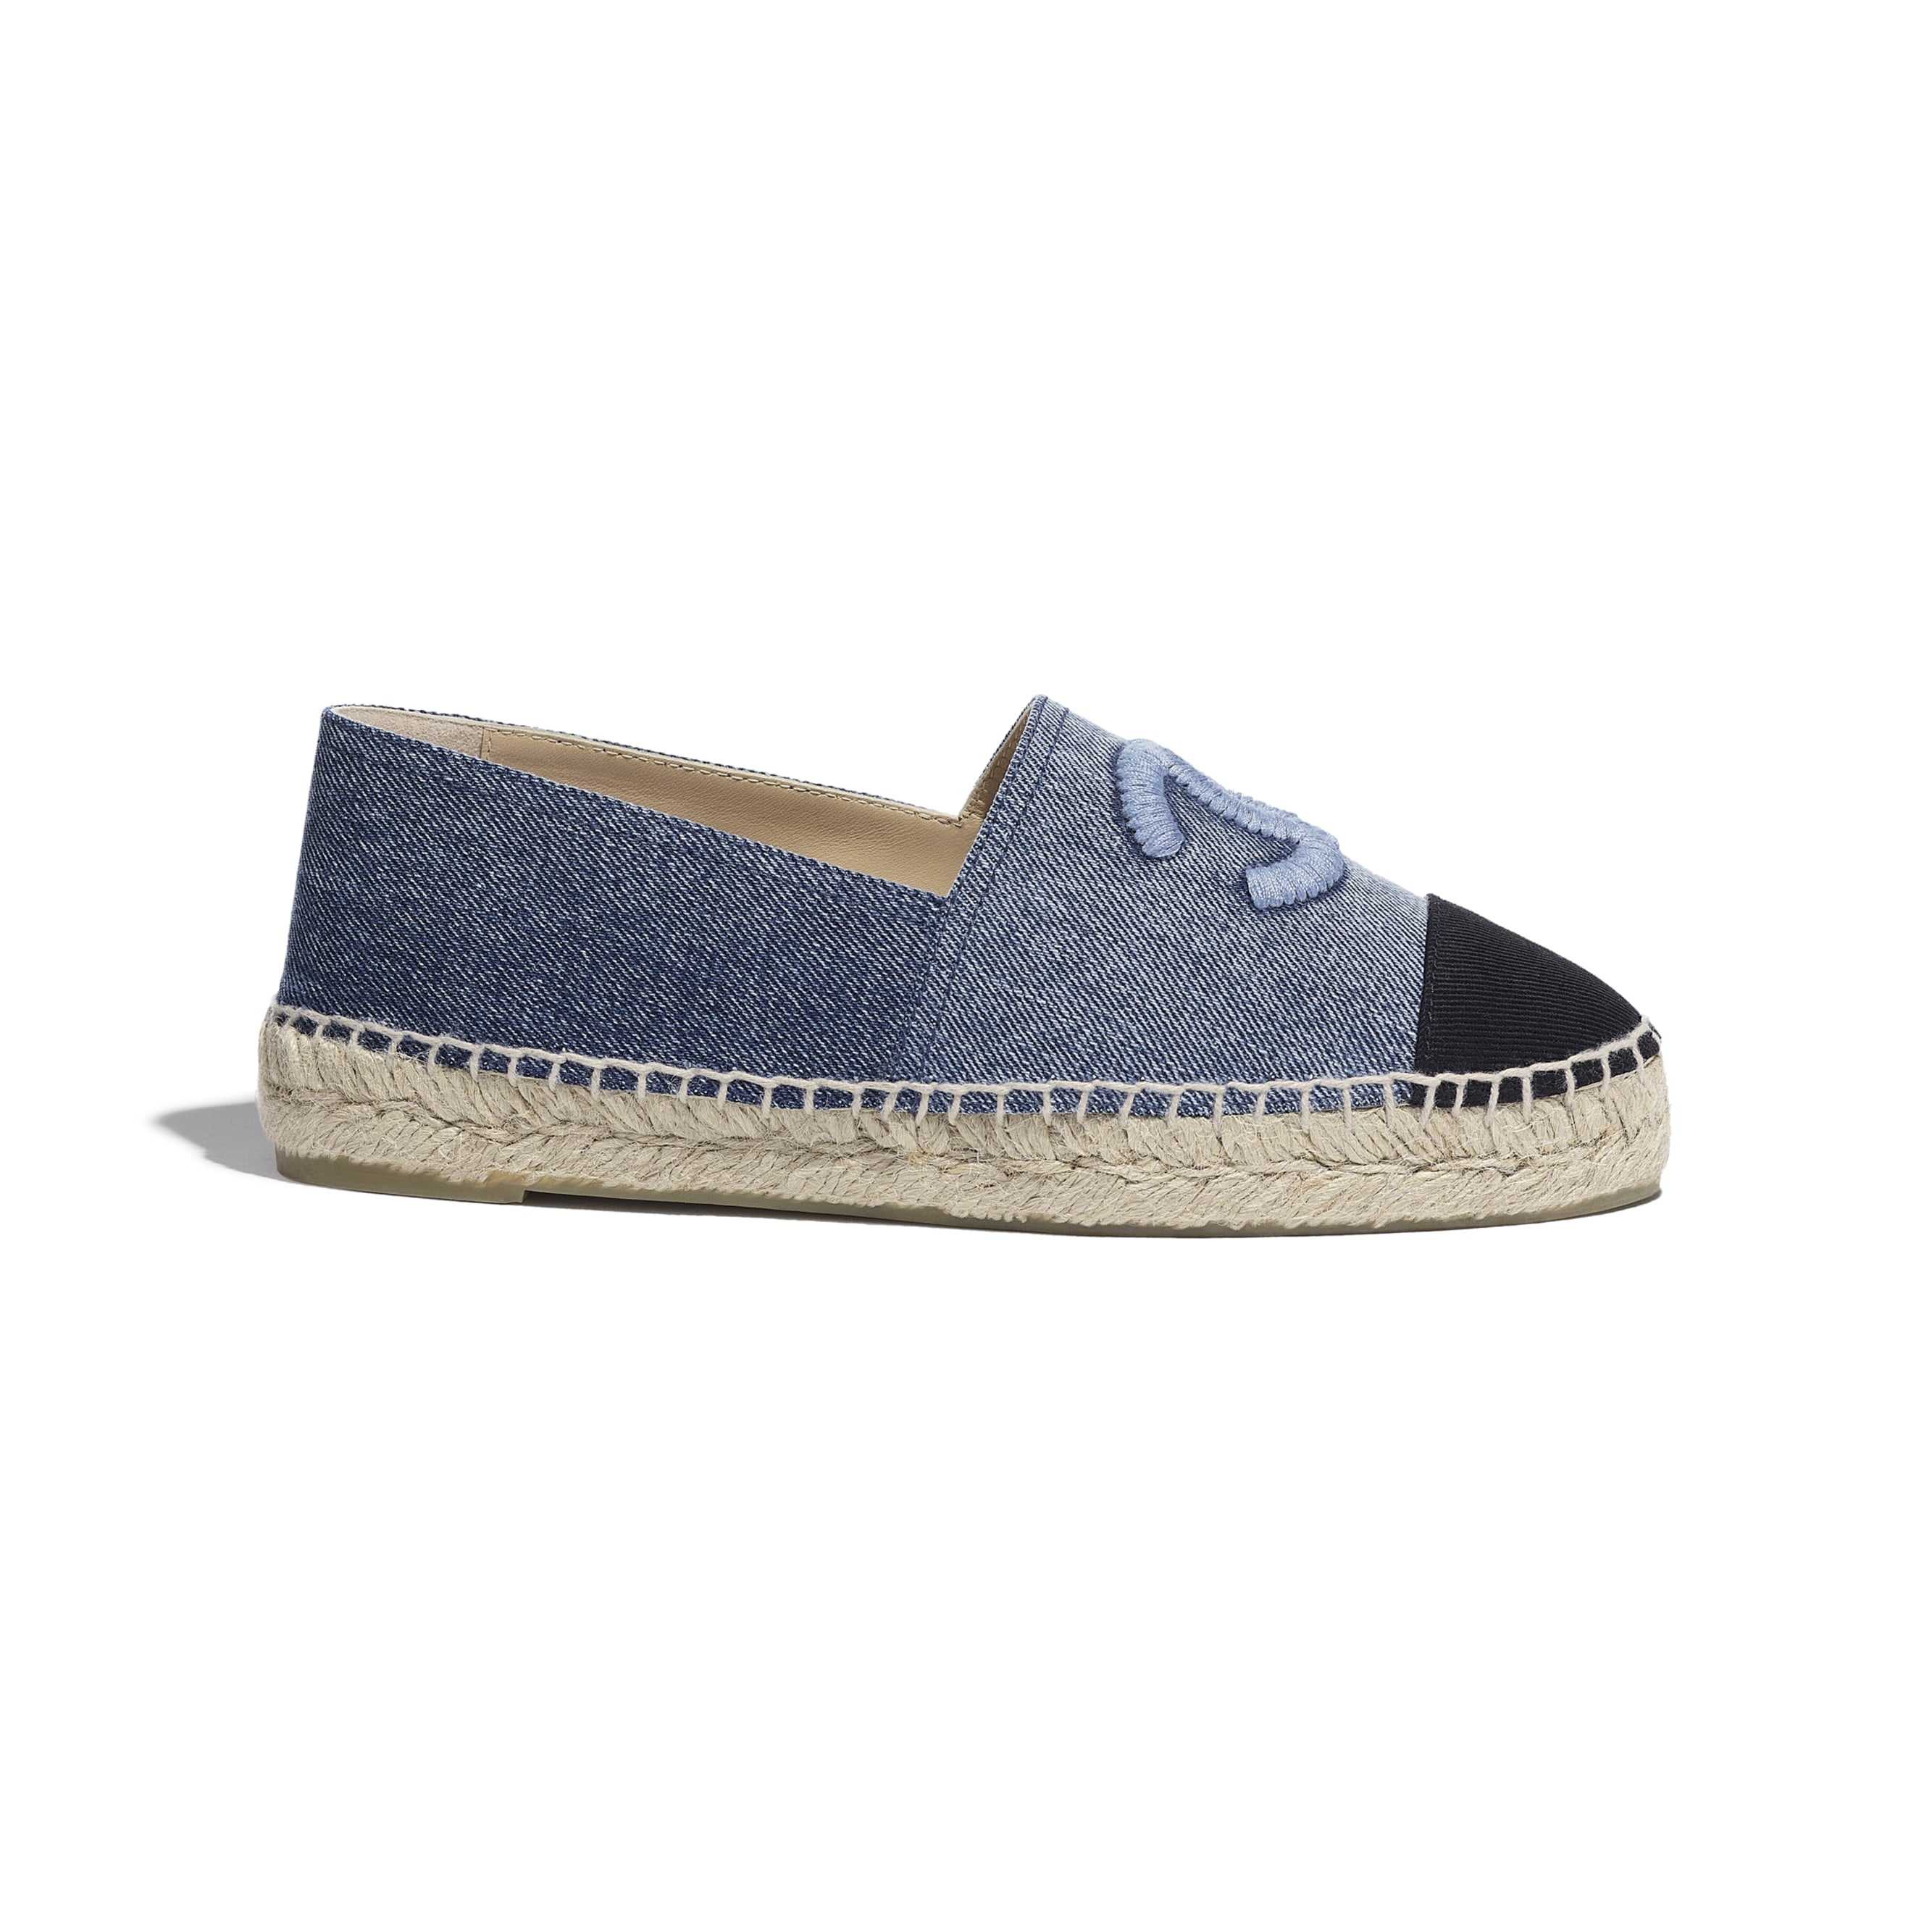 Espadrilles - Blue & Black - Denim - CHANEL - Default view - see standard sized version